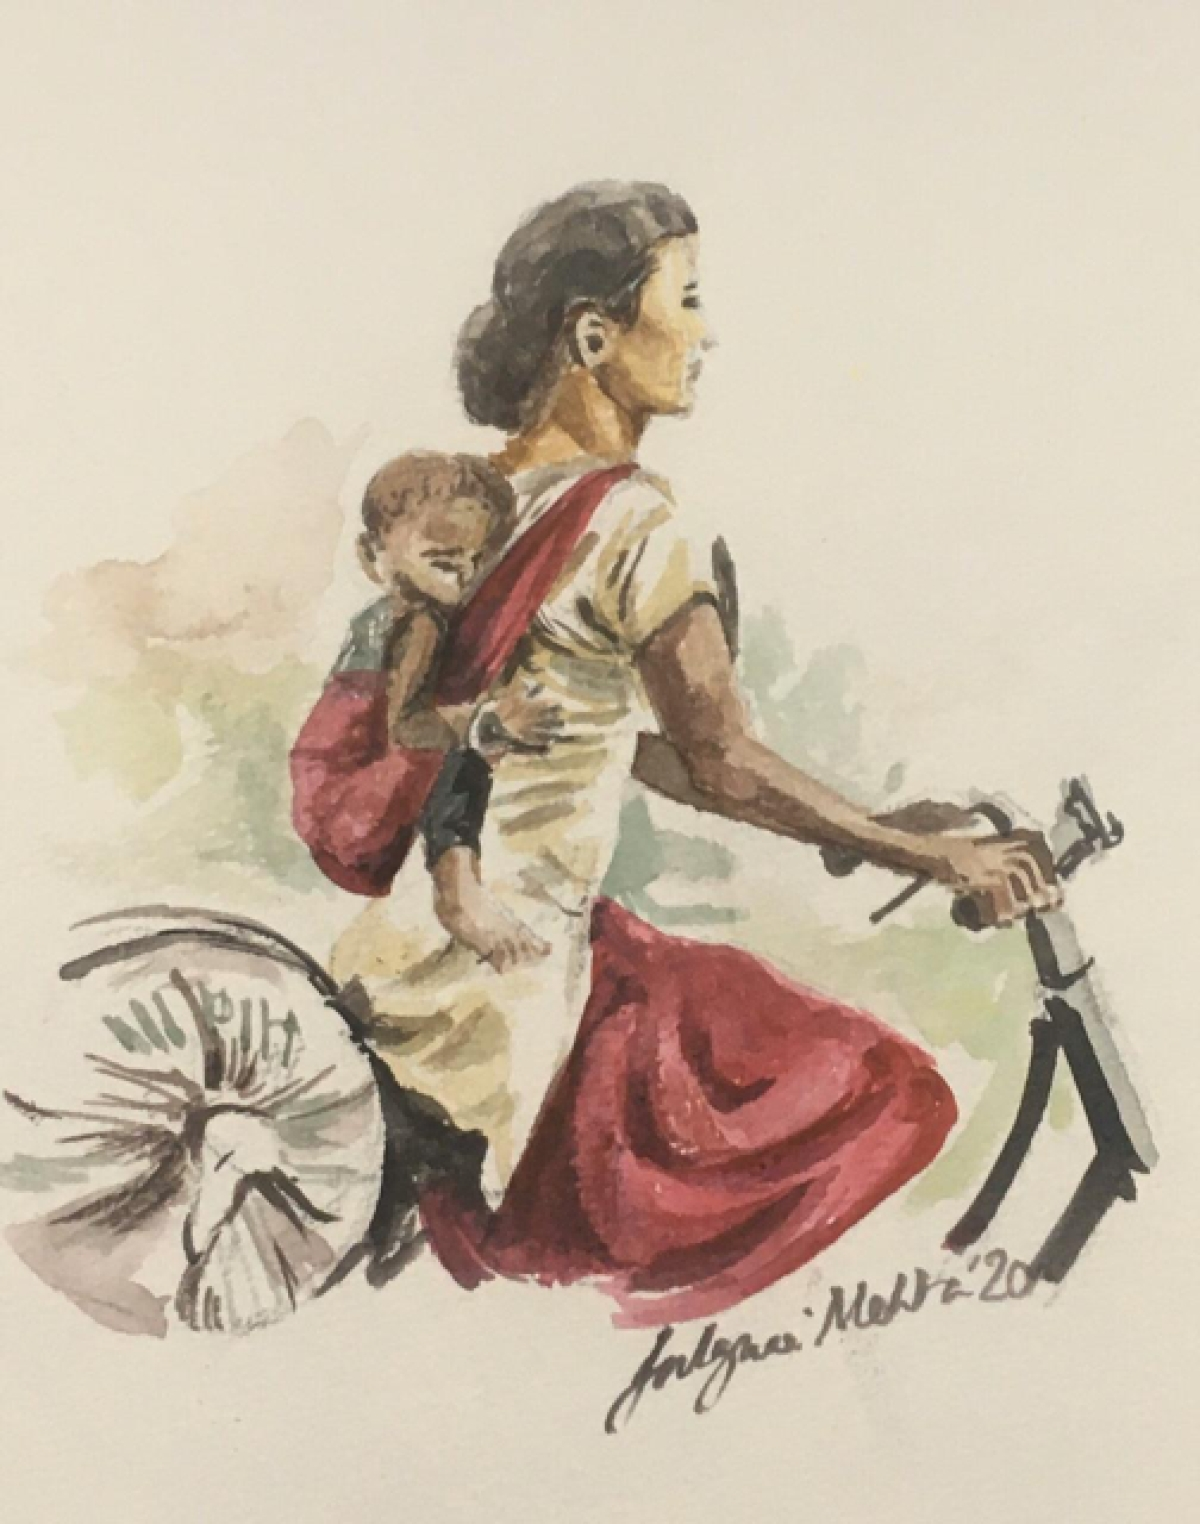 A thousand kilometres is nothing, when a mother is out to save her little ones life. So what if it's to be covered by an ordinary cycle, with a few rupees in her sack, and her baby tied to her while the sun shines so bright!